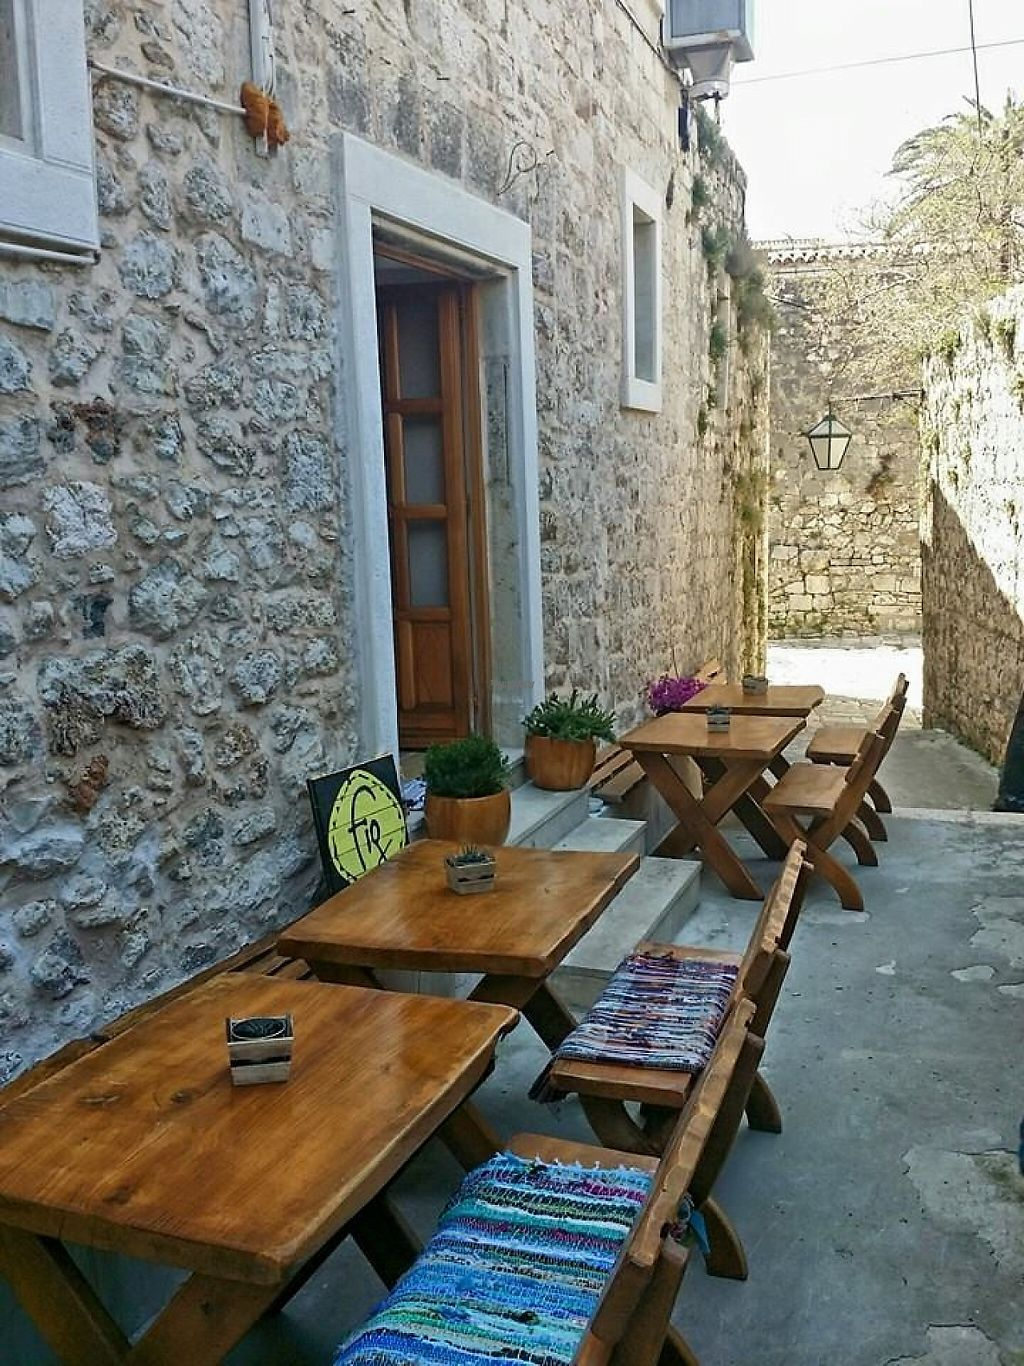 """Photo of Fig Cafe Bar  by <a href=""""/members/profile/community"""">community</a> <br/>Fig Cafe Bar <br/> March 3, 2017  - <a href='/contact/abuse/image/72443/232003'>Report</a>"""